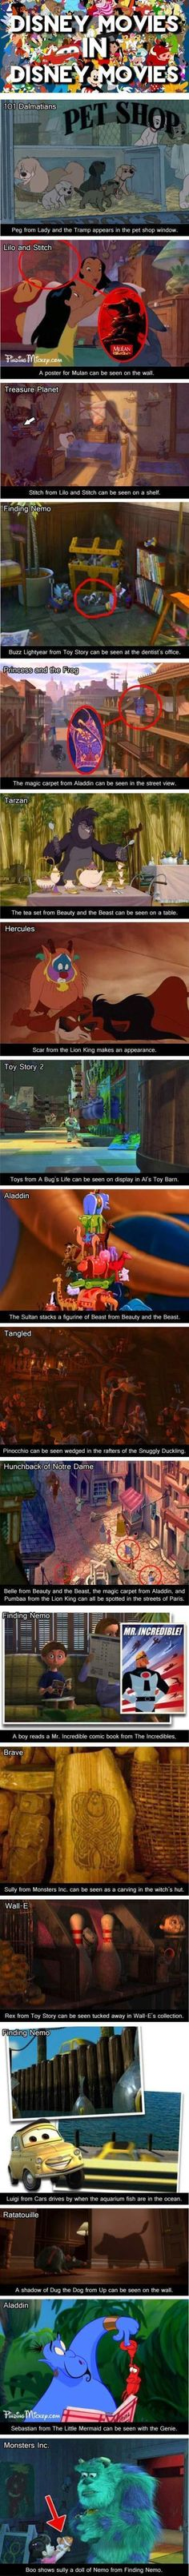 Disney Movies Inside Other Disney Movies…